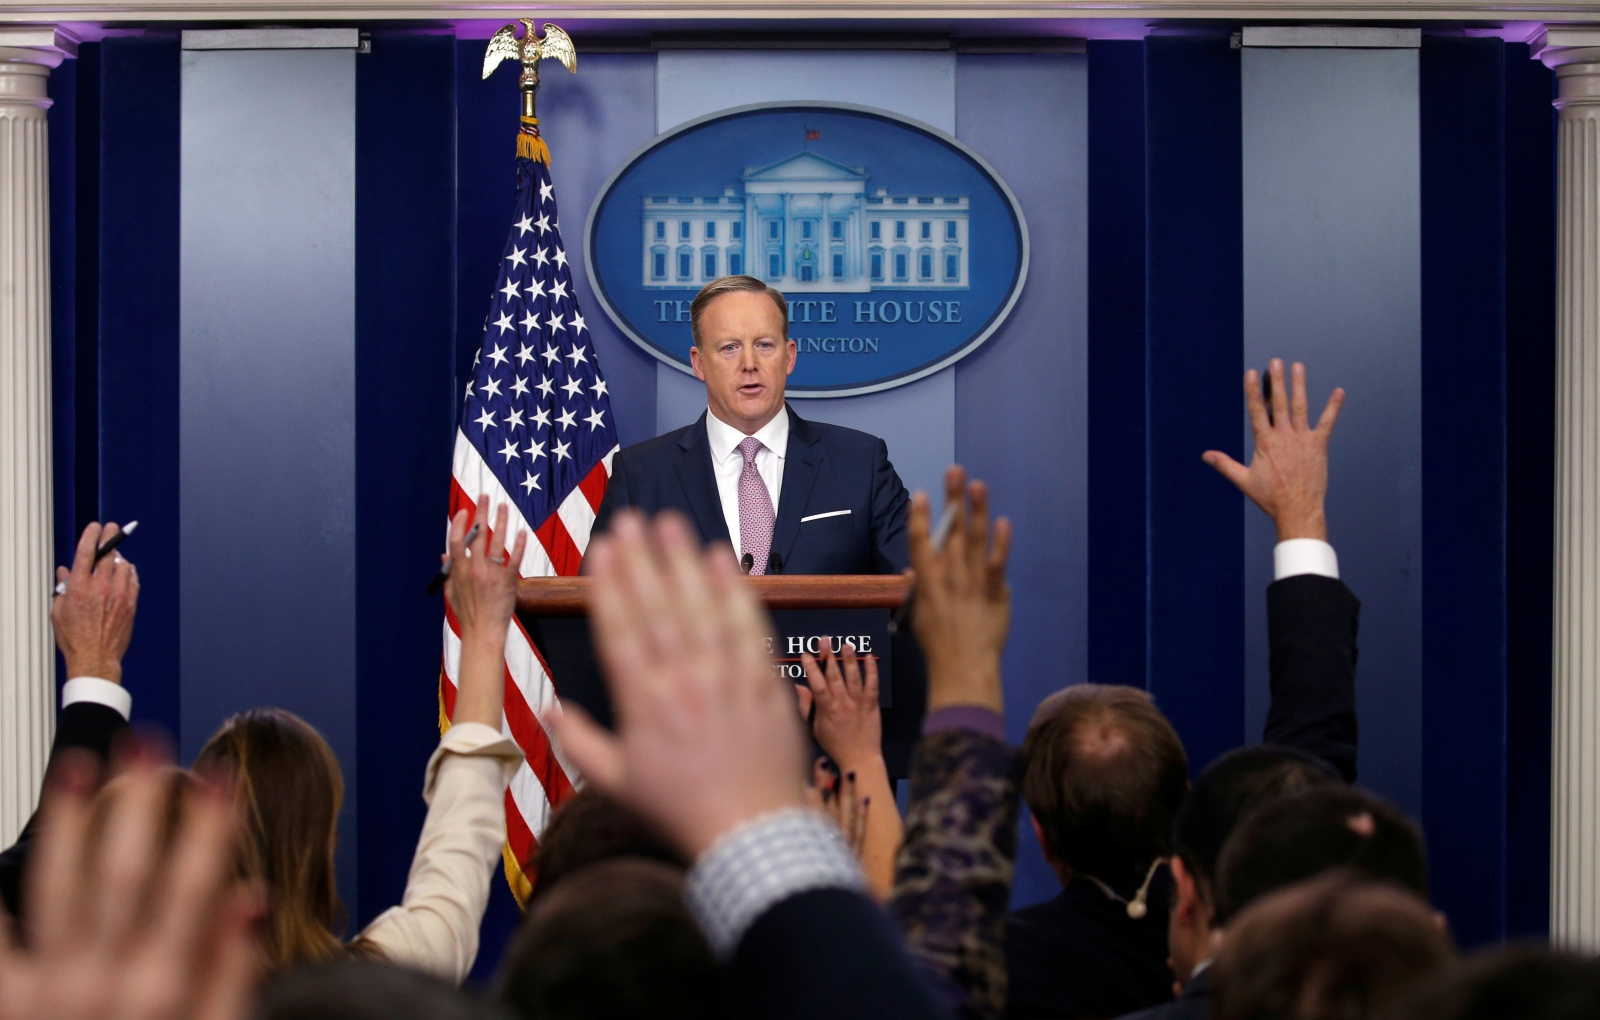 Sean Spicer Continues To Battle Press And Announces